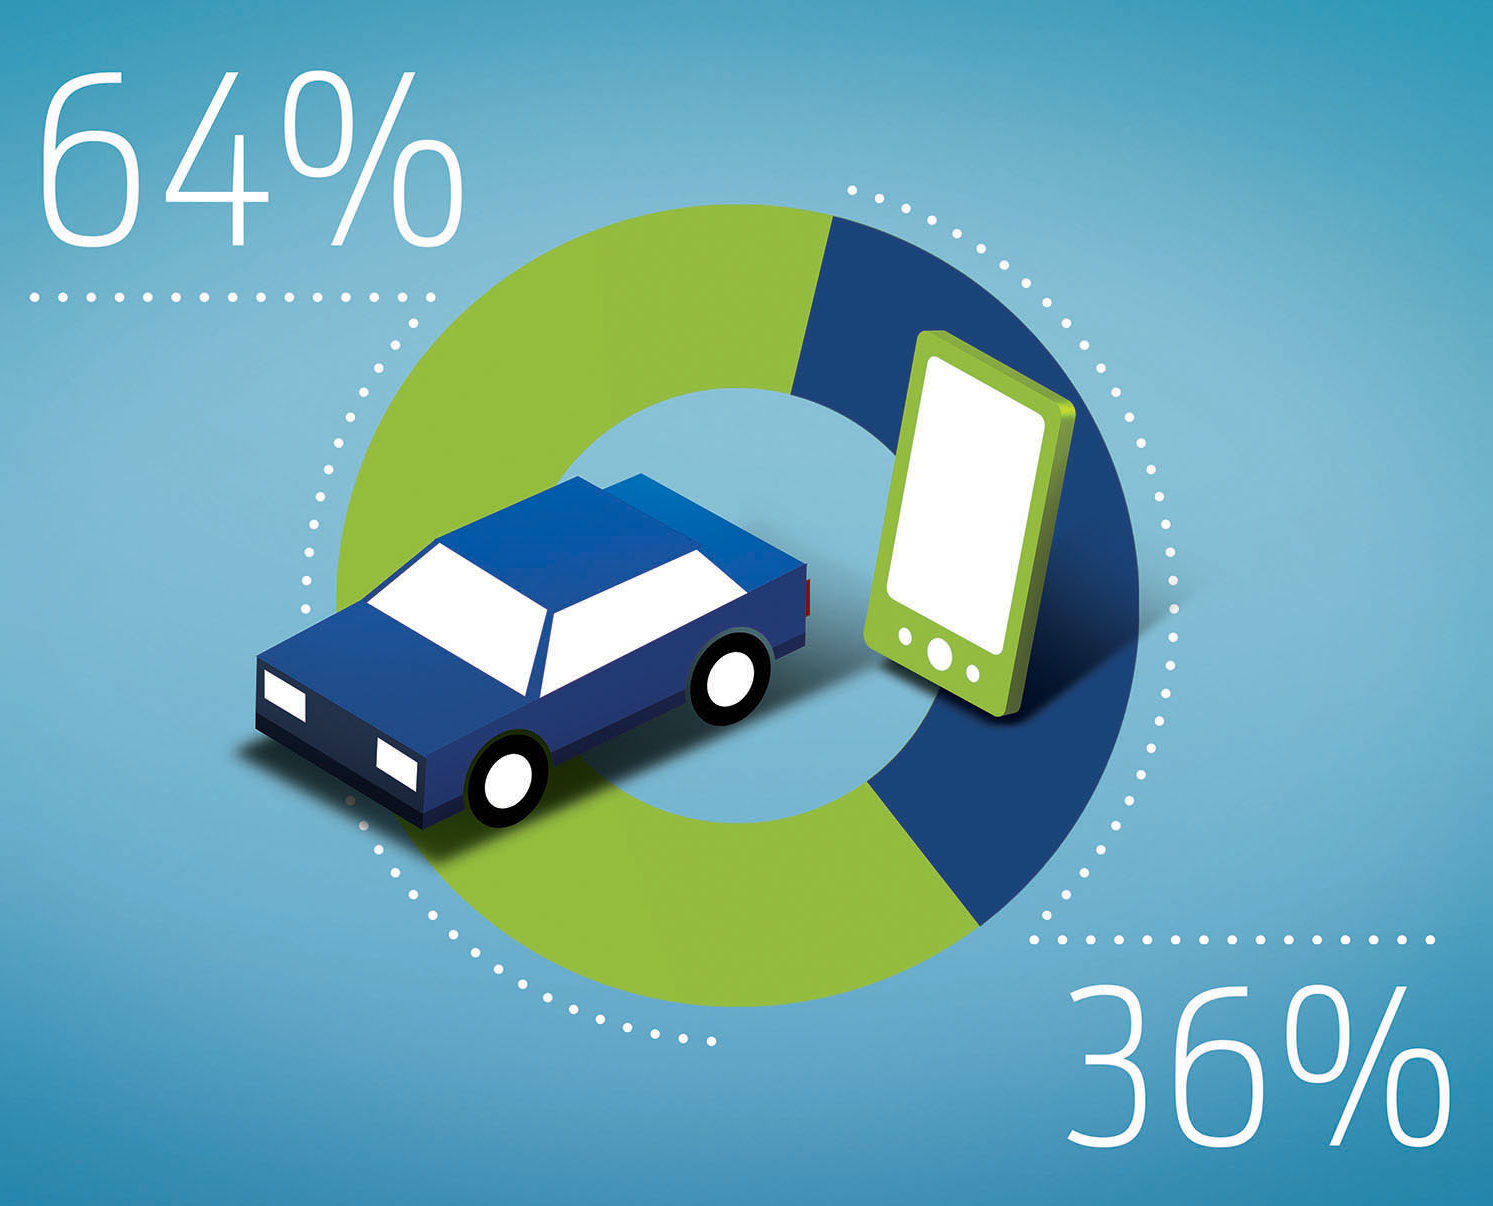 Ford Infographic: Millennials